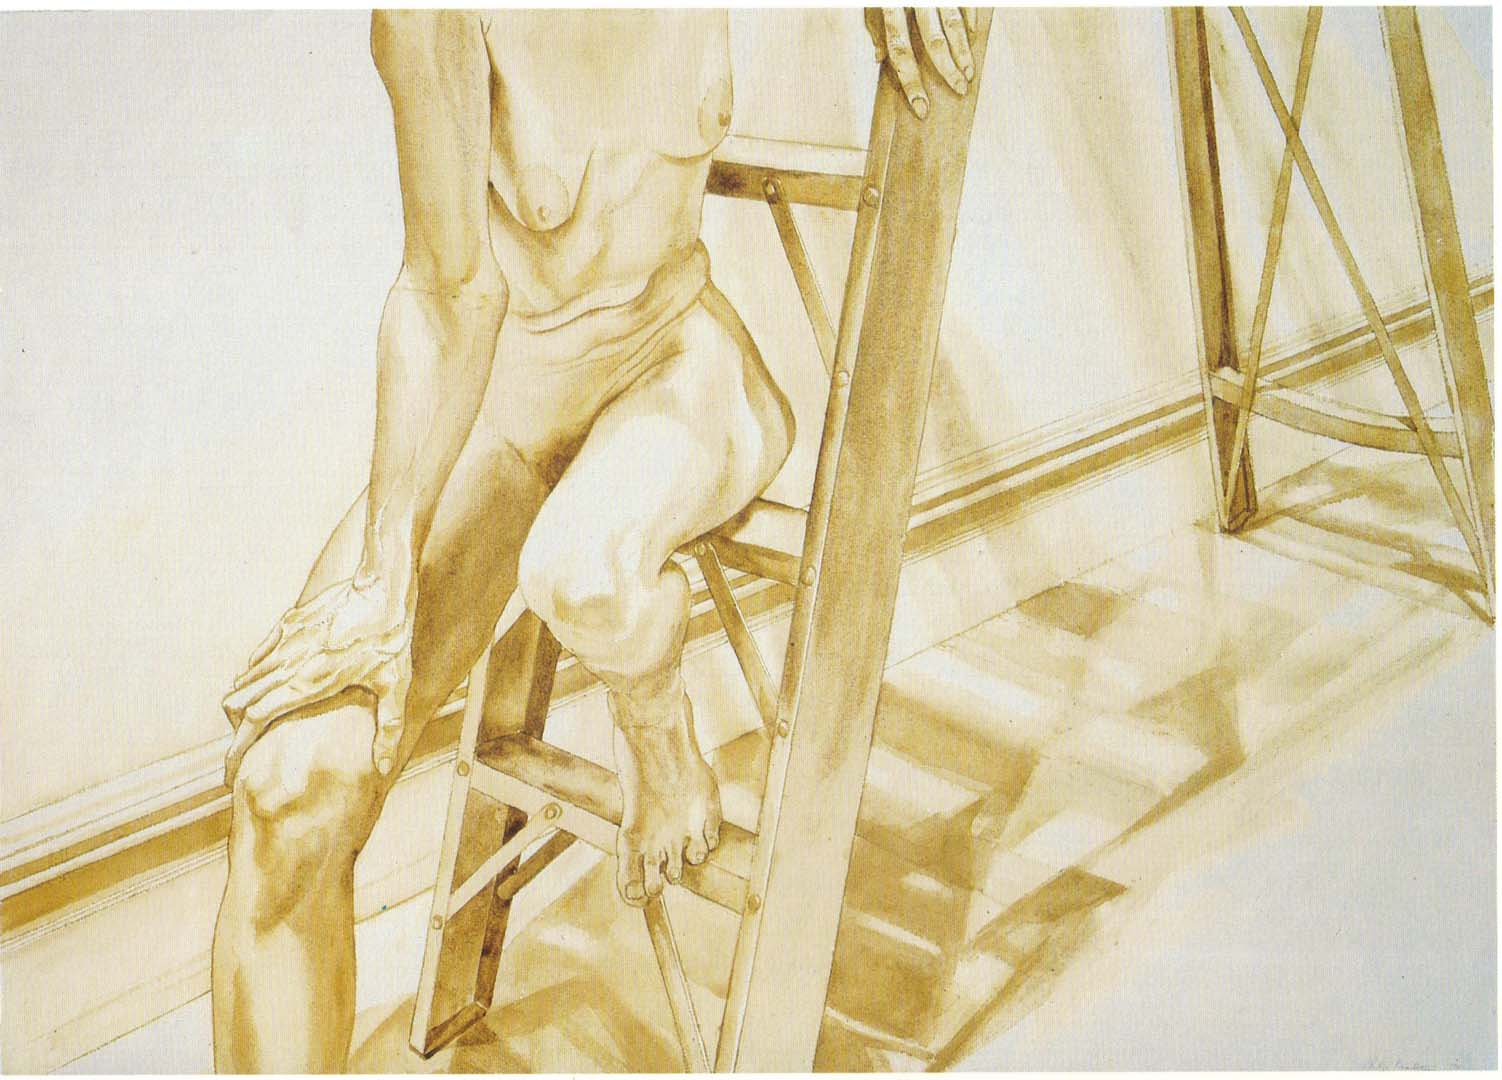 1976 Female Model on Ladder Sepia Wash on Paper 29.5 x 41